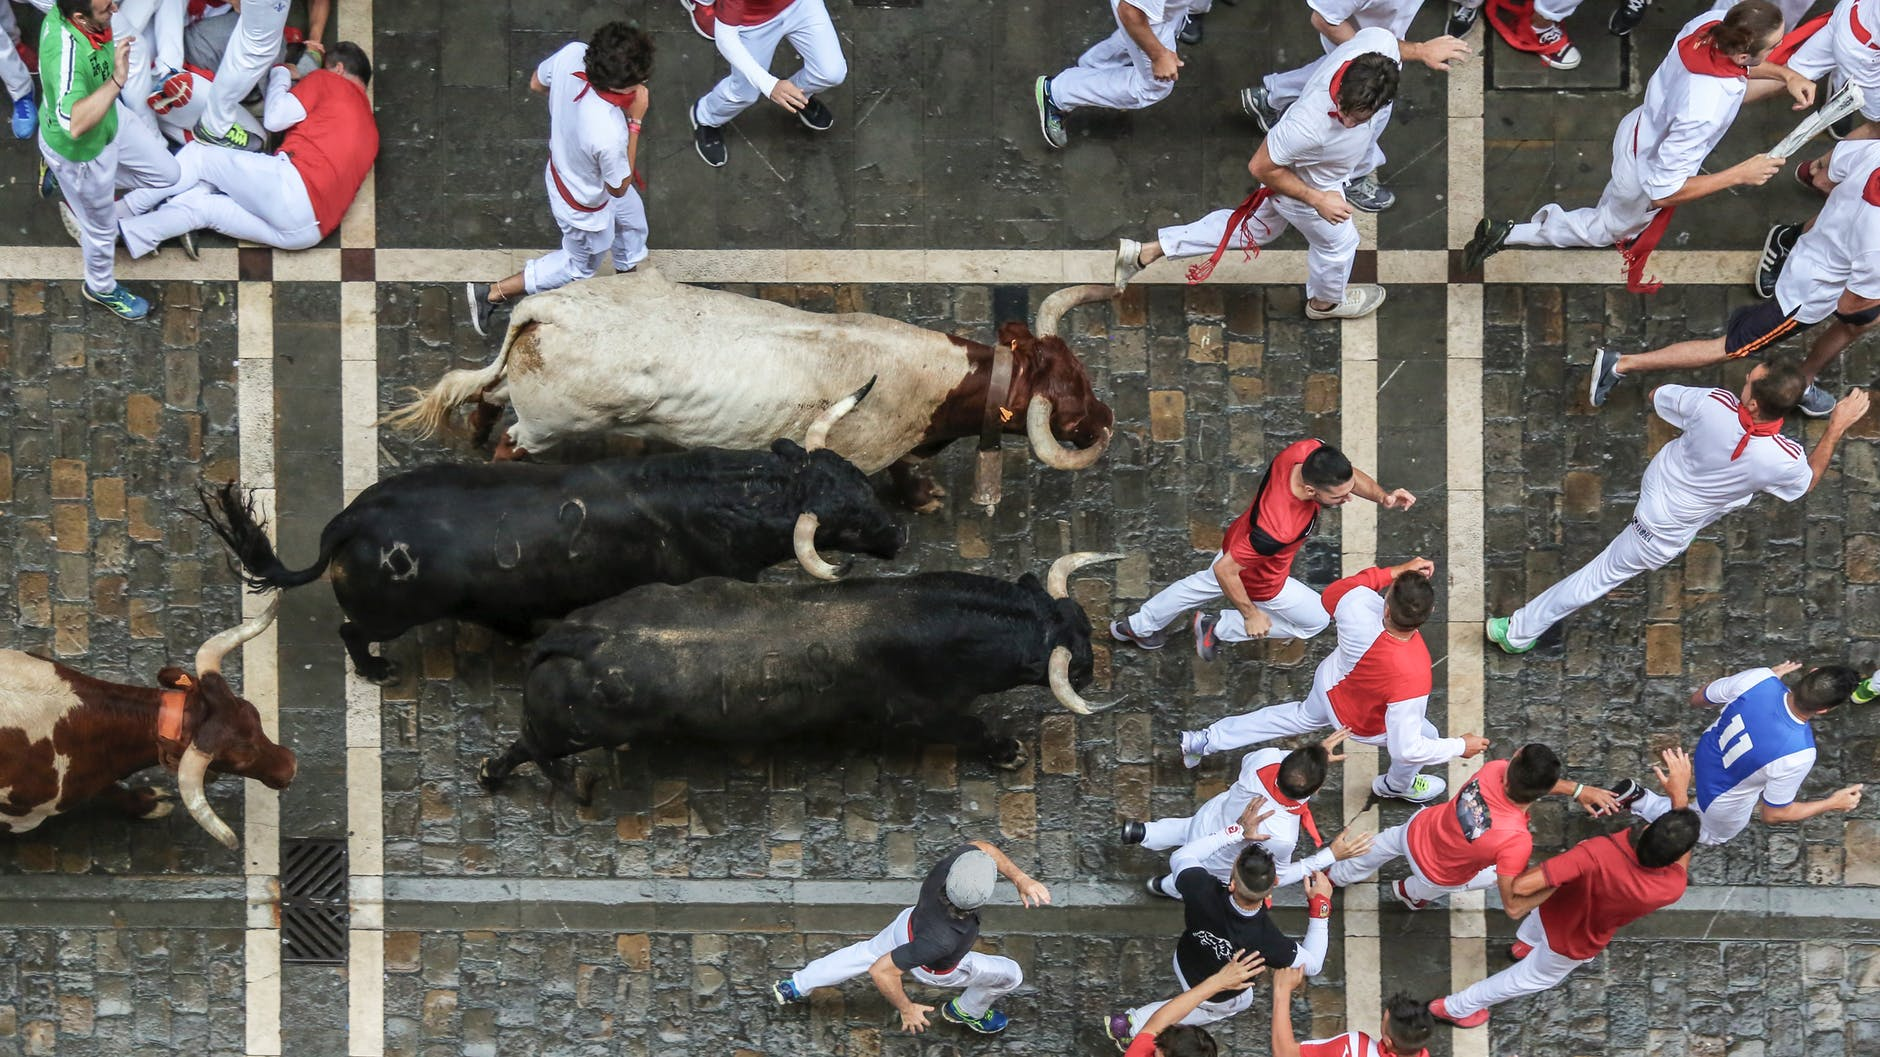 bird s eye view photography of bull surrounded with men